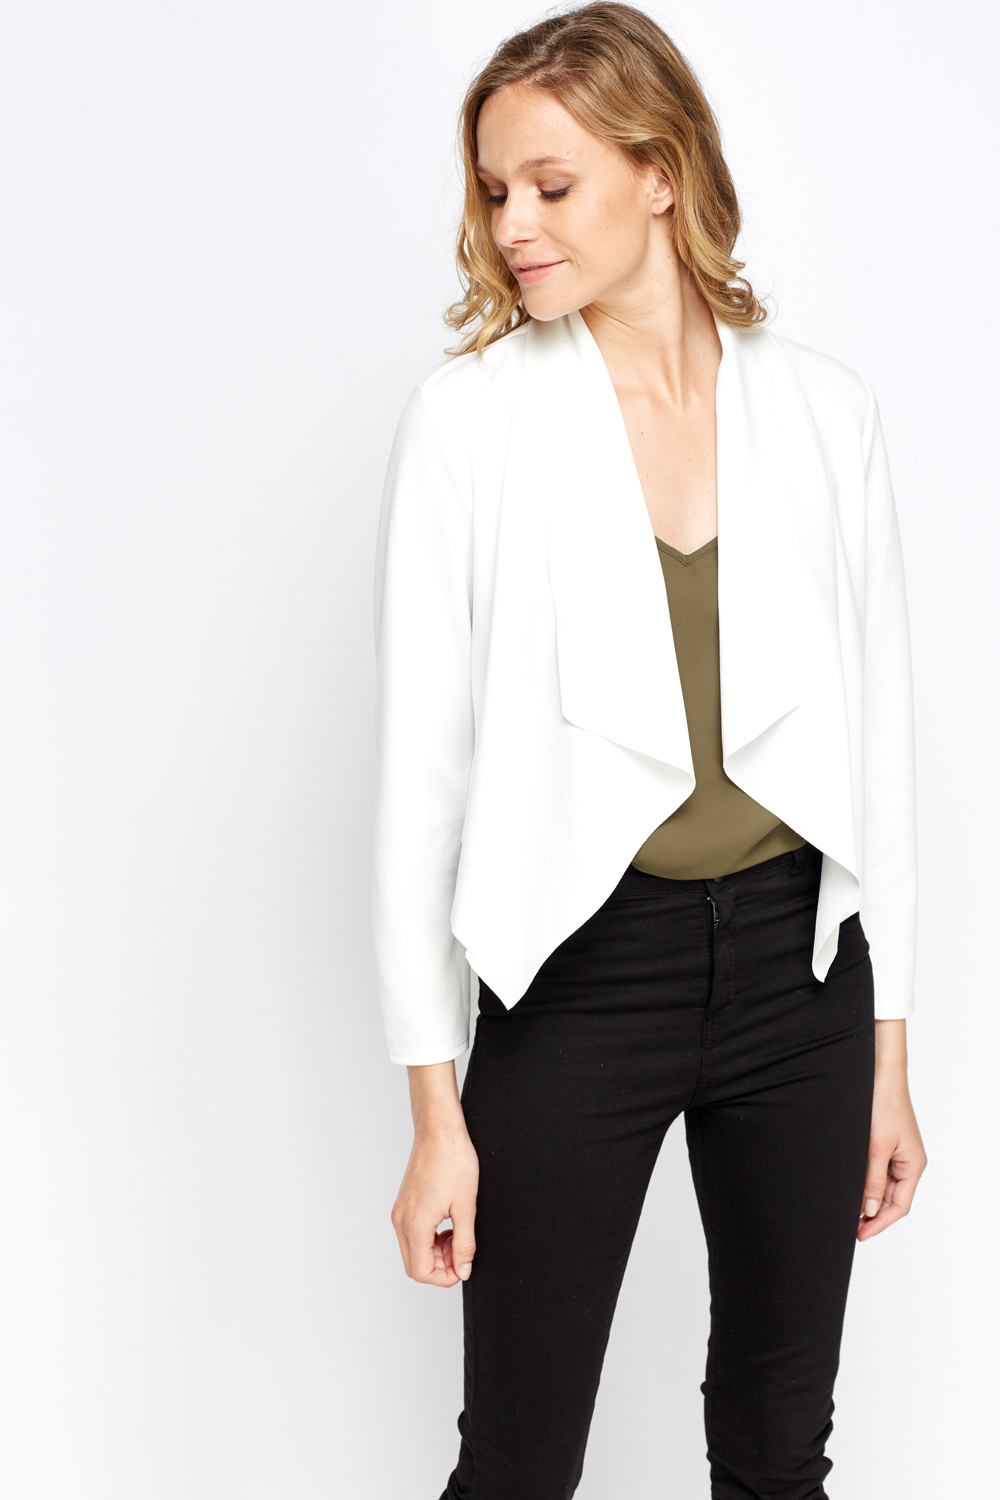 Waterfall Cropped Cardigan - Just £5